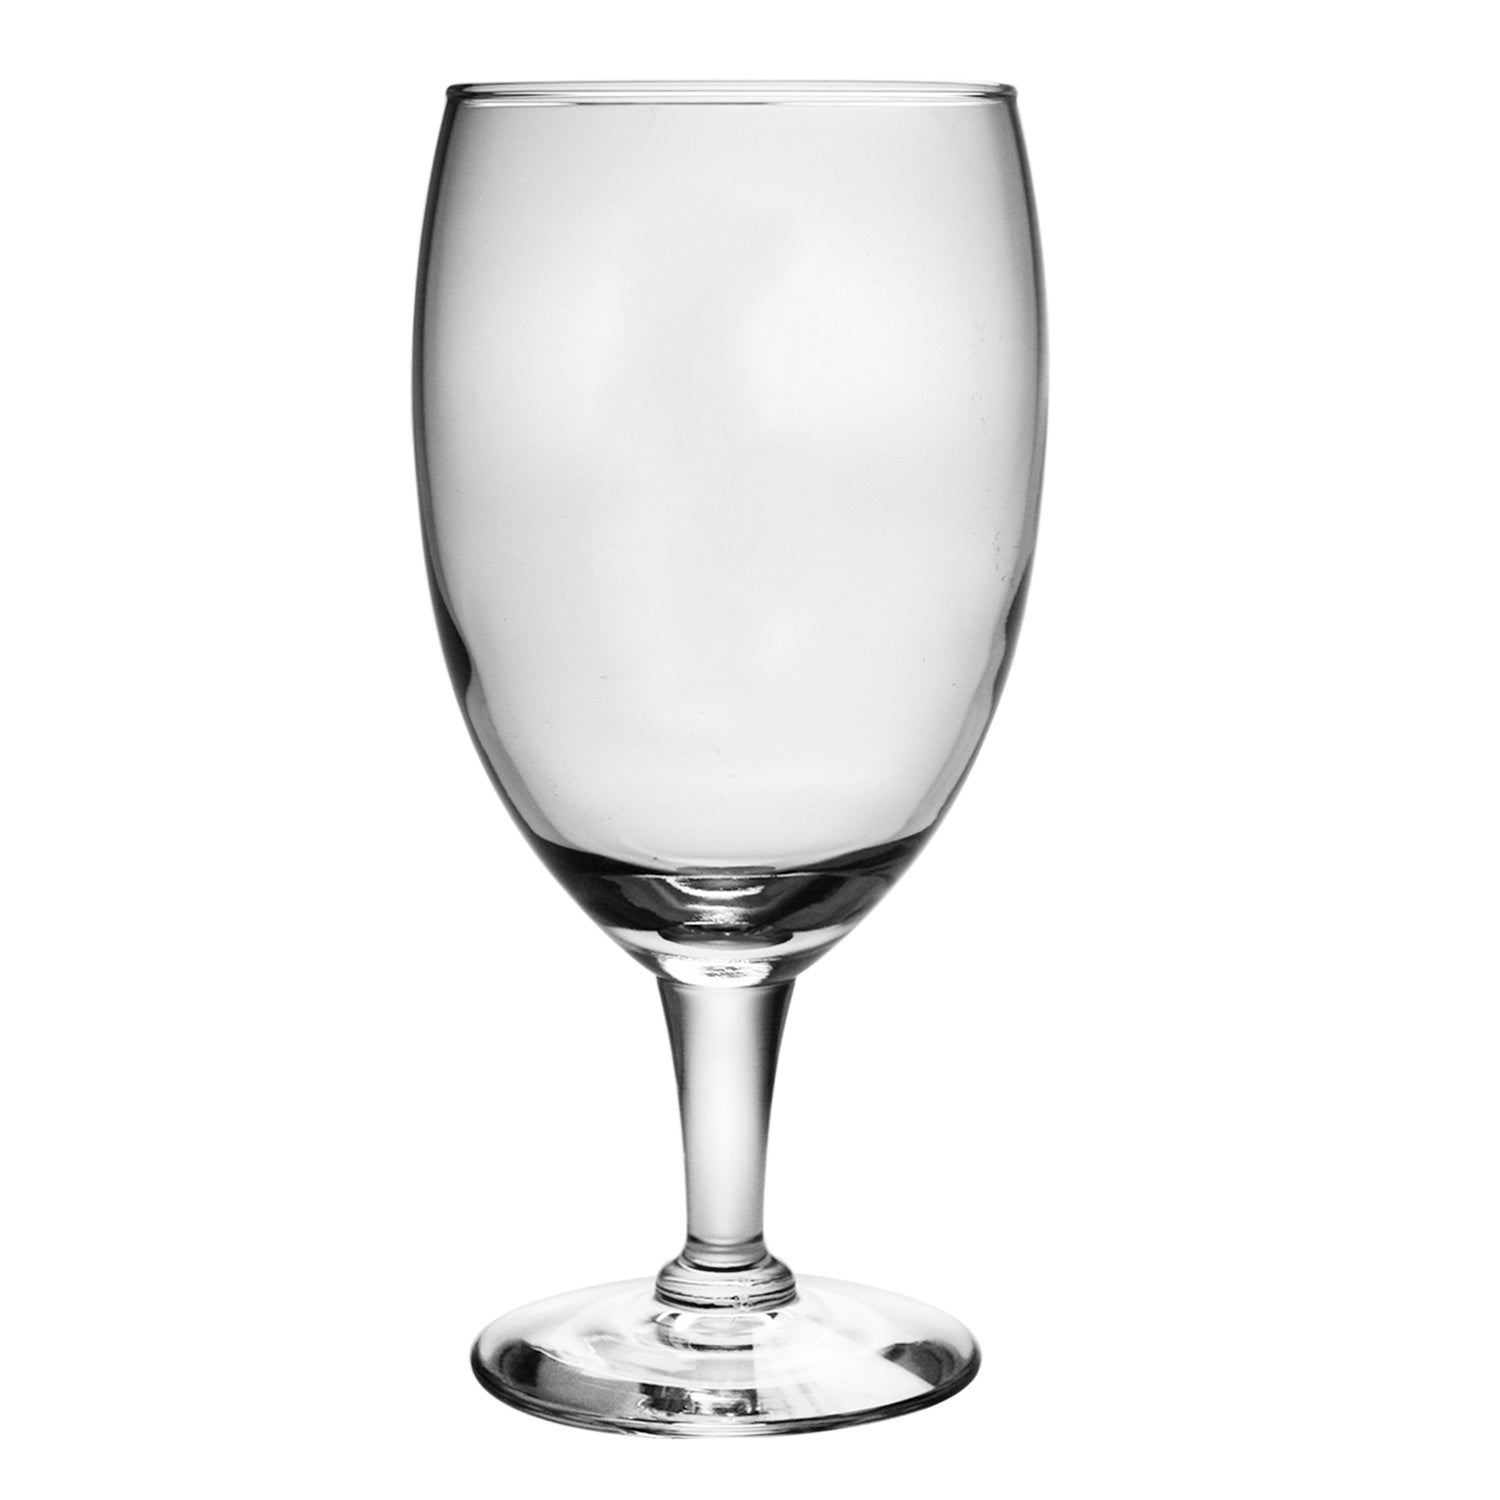 Susquehanna Glass Footed Glass Goblets (Set of 4), Clear